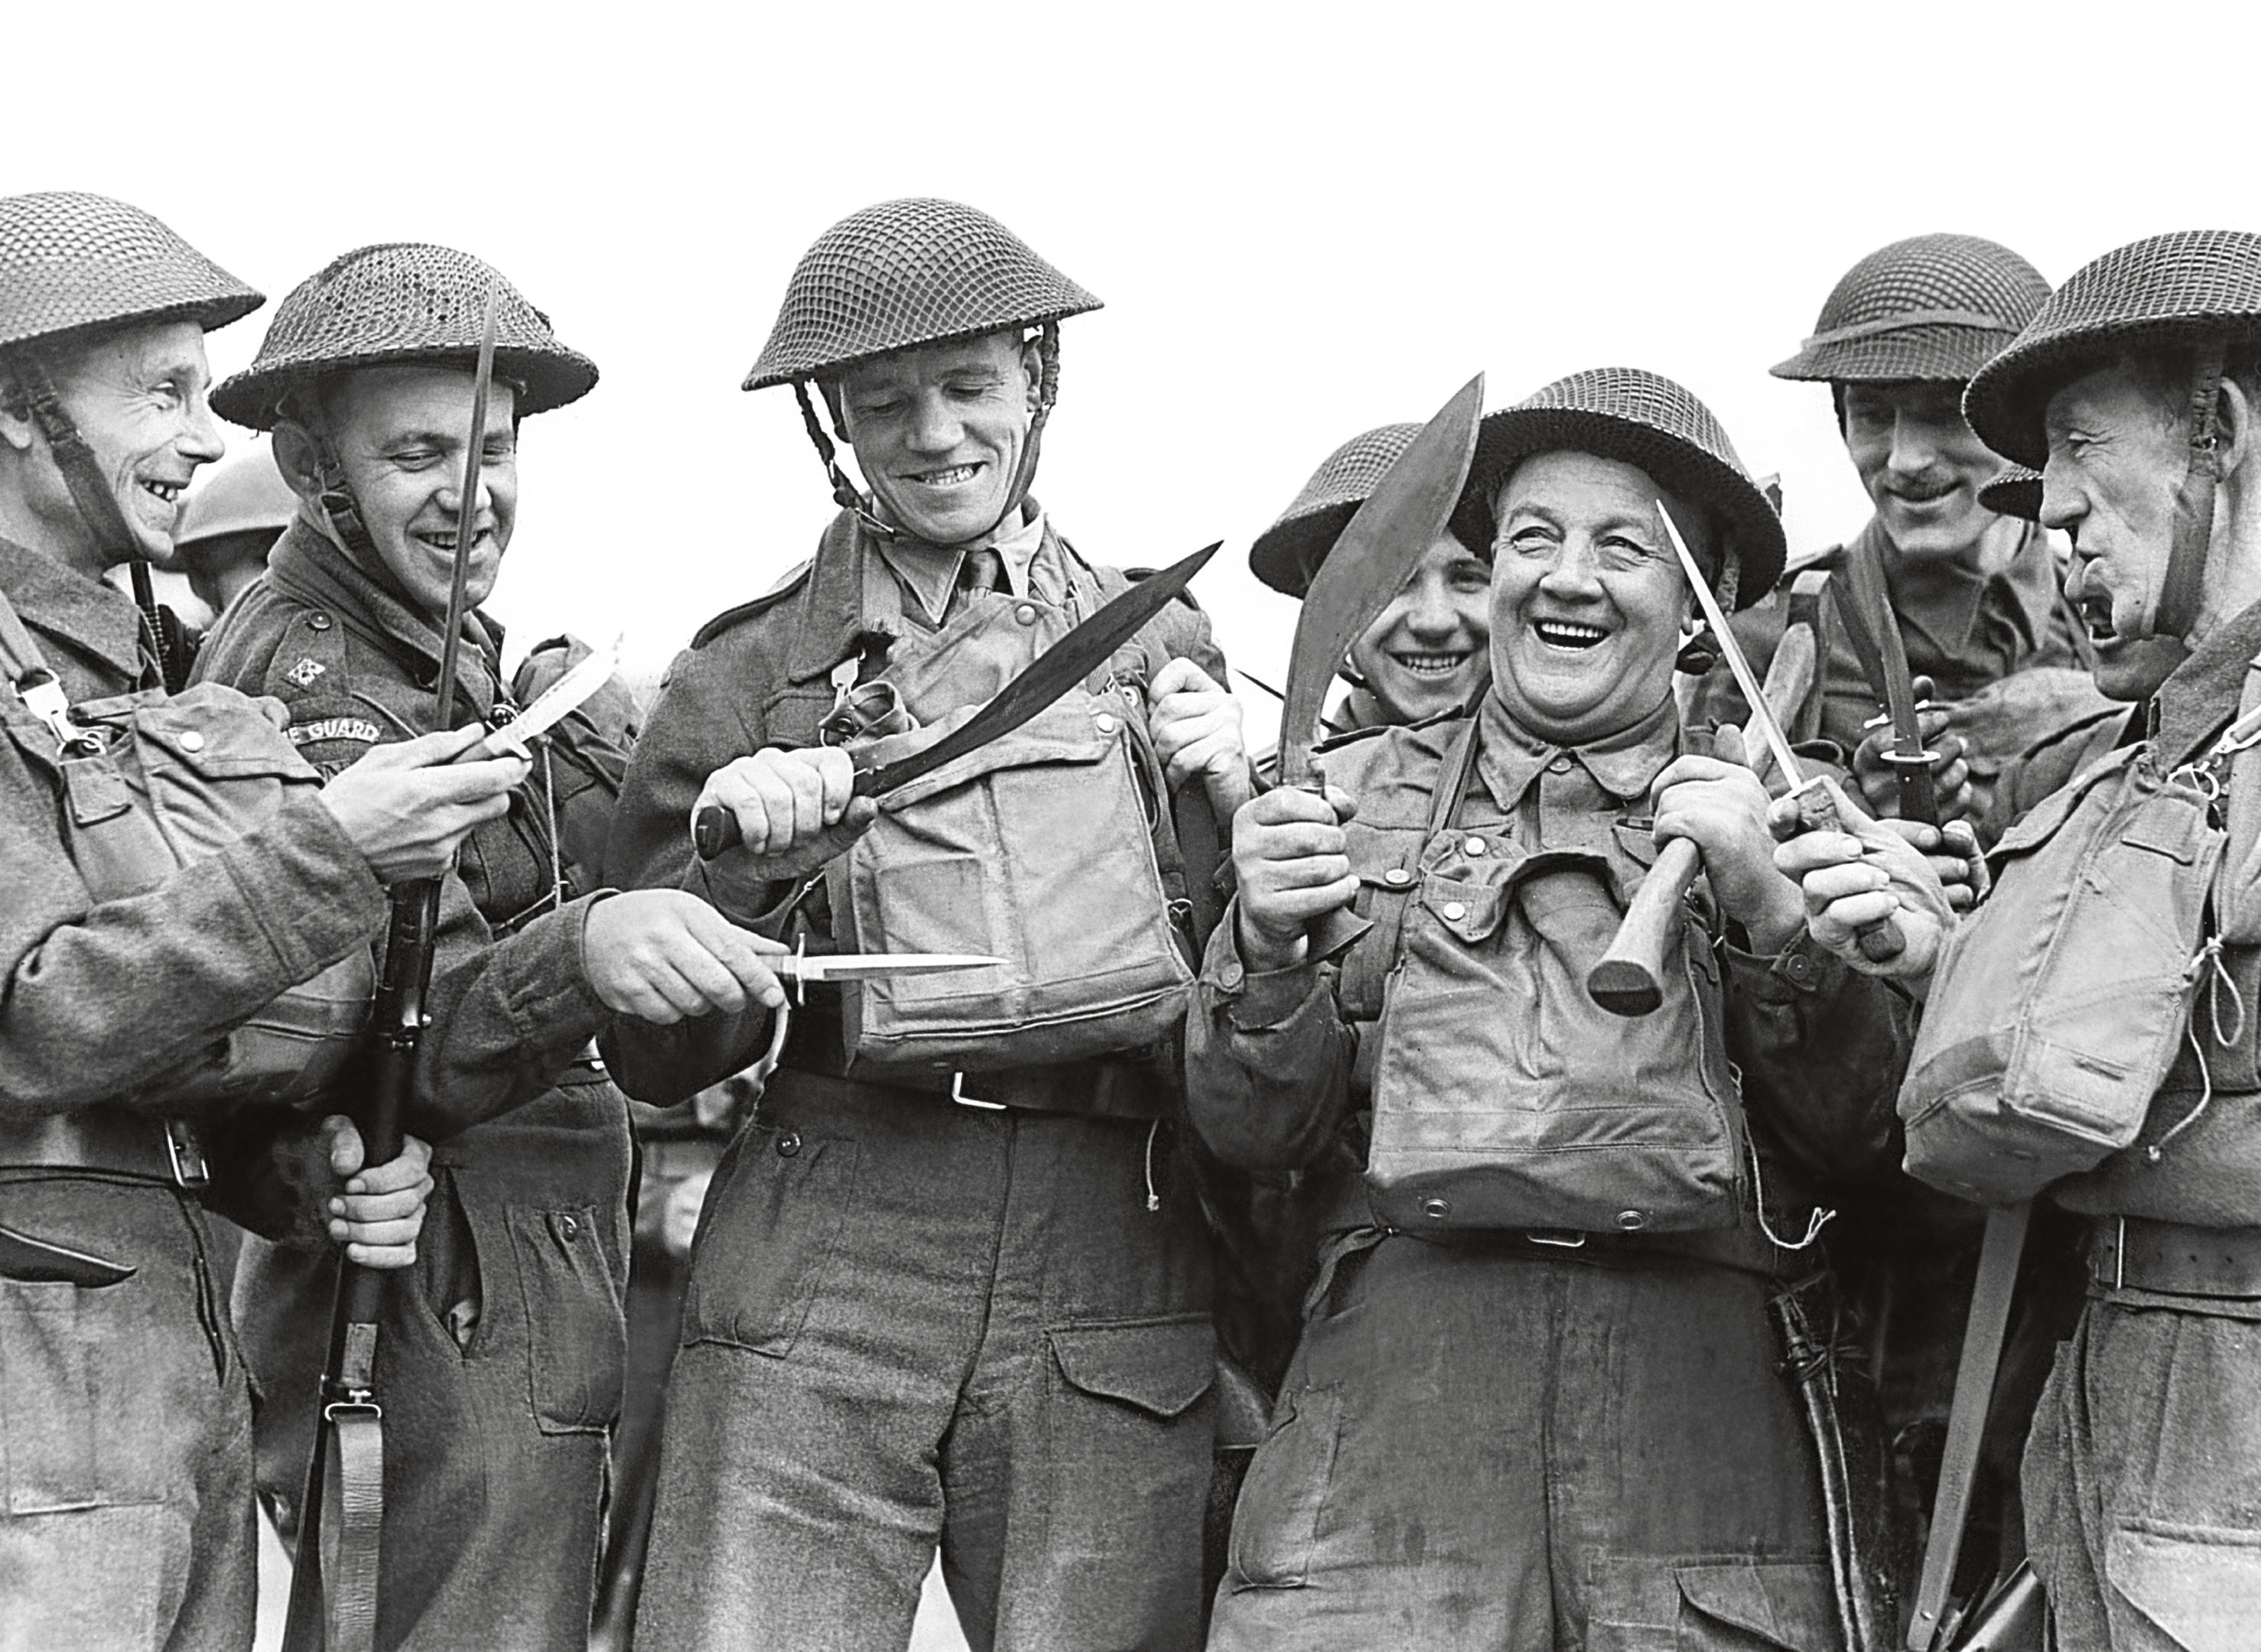 Members of the Home Guard, circa 1942 (Fox Photos/Hulton Archive/Getty Images)